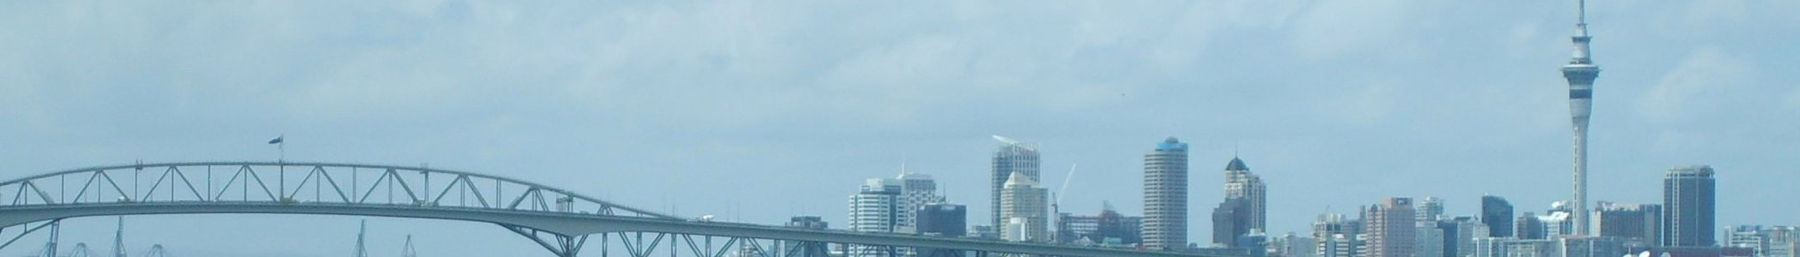 Auckland banner Skyline with bridge and Sky Tower.jpg